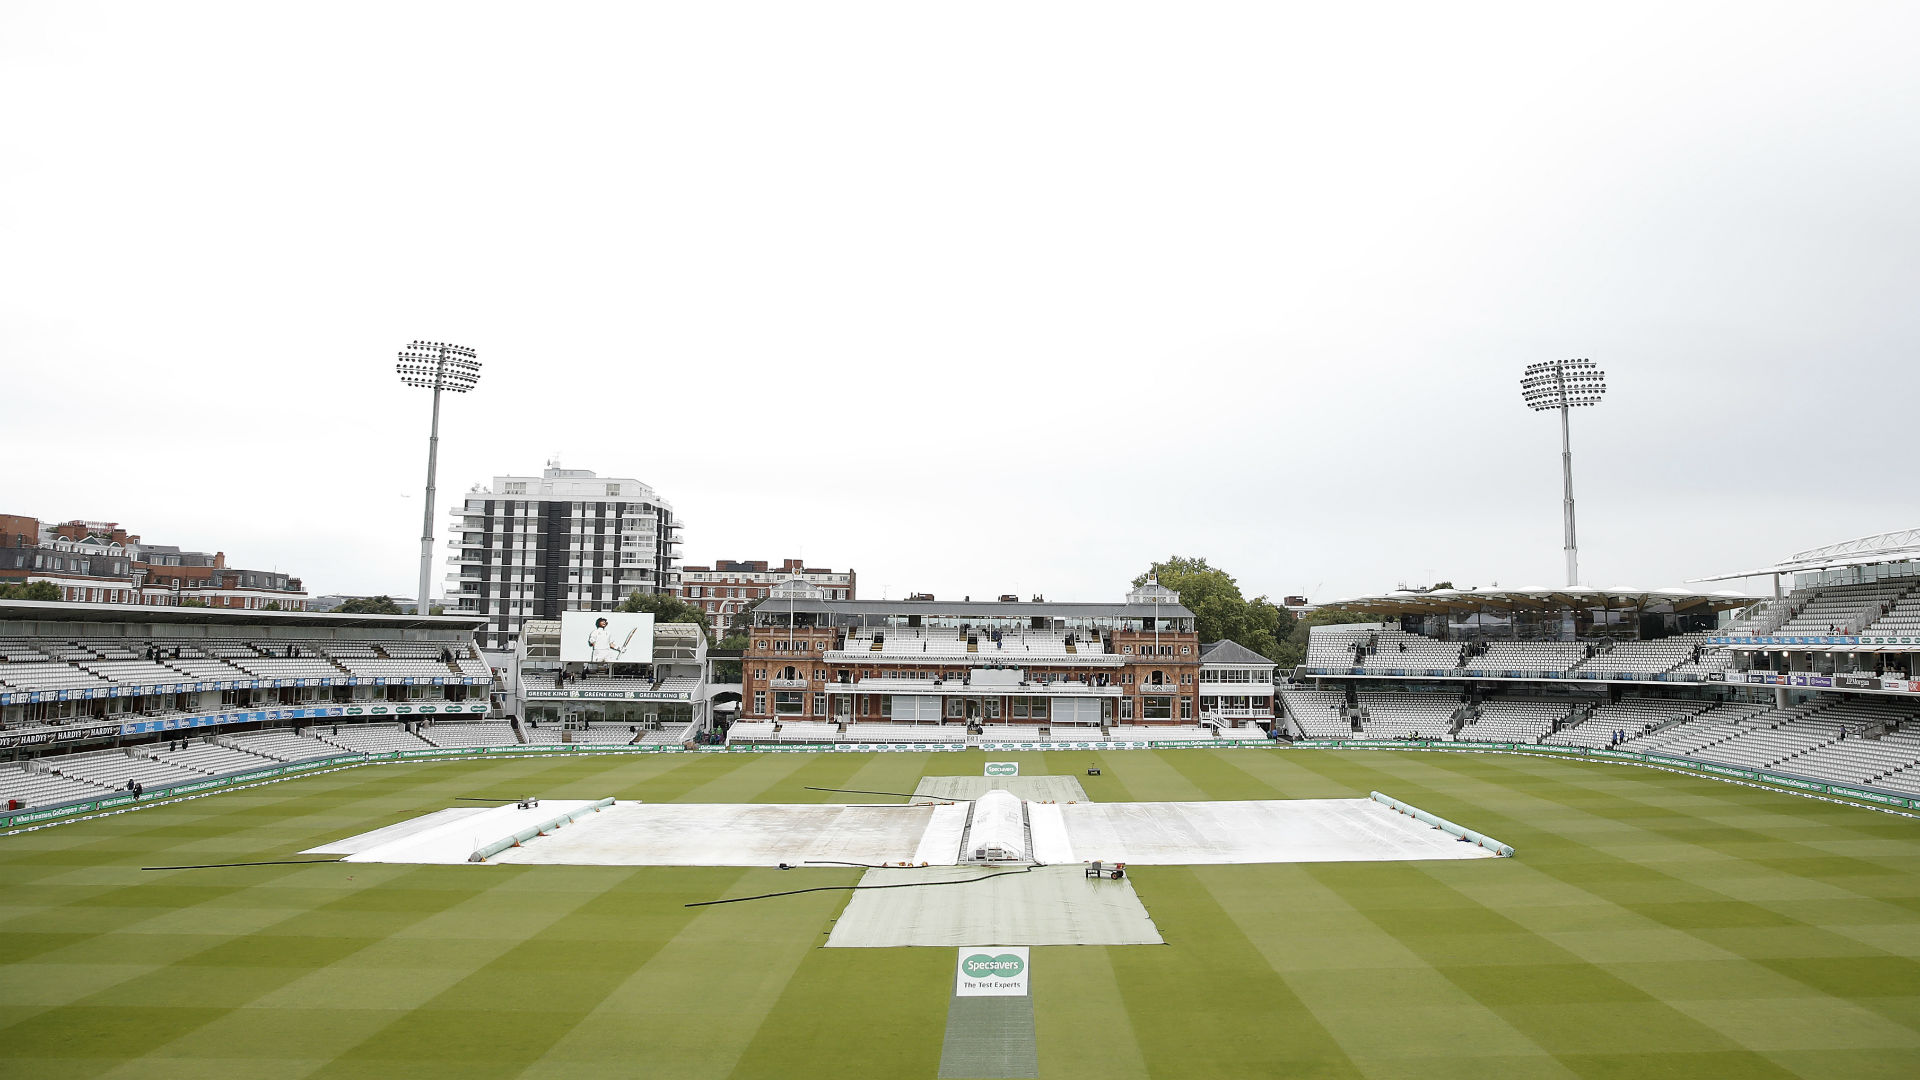 Rain at Lord's on Wednesday morning delayed the start of the second Test between England and Australia.